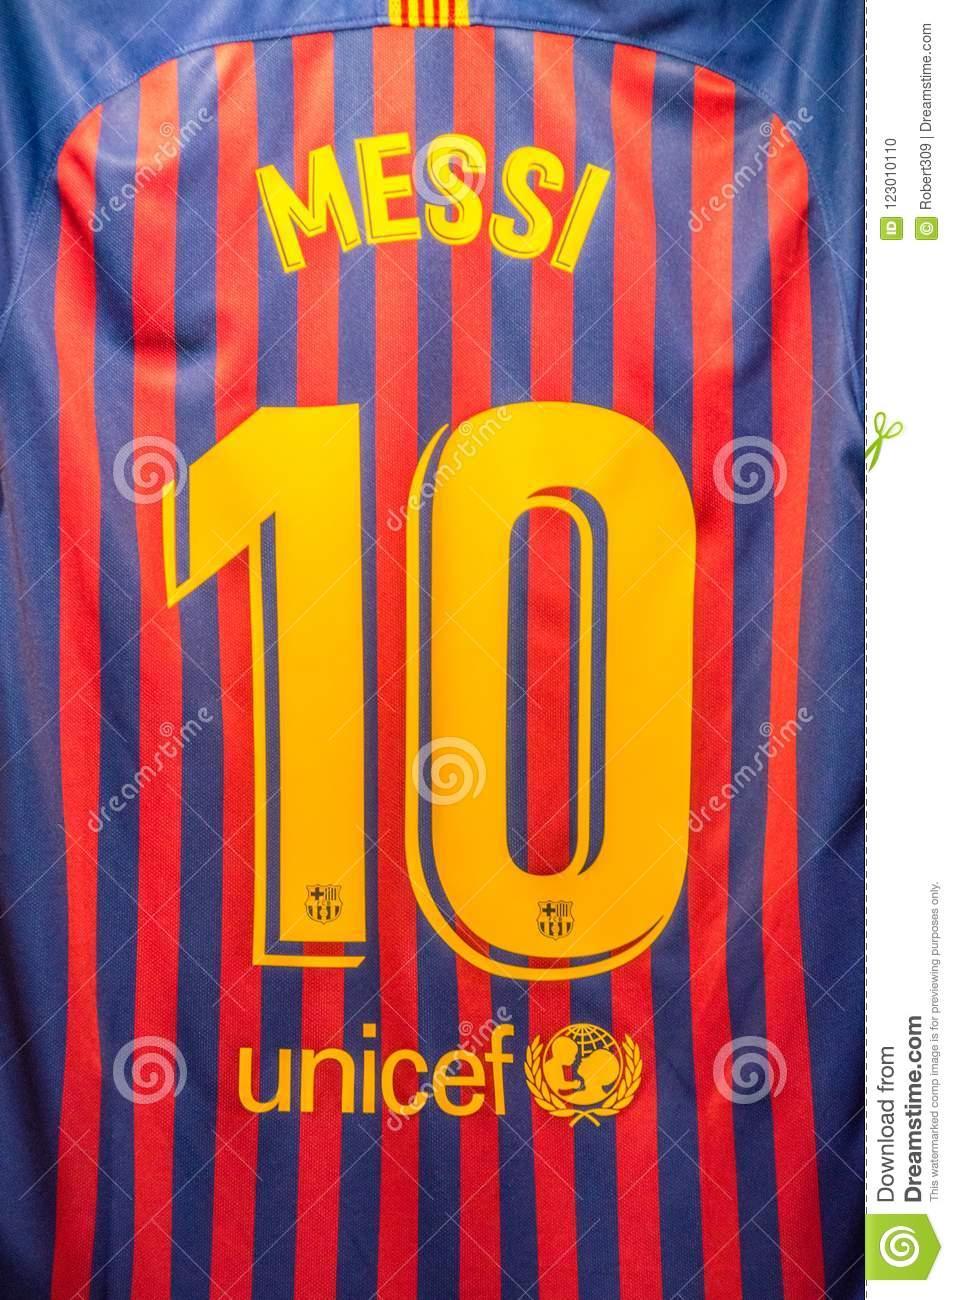 6989a1b1895 Messi And Number 10 On T-shirt Of Futbol Club Barcelona. Editorial ...